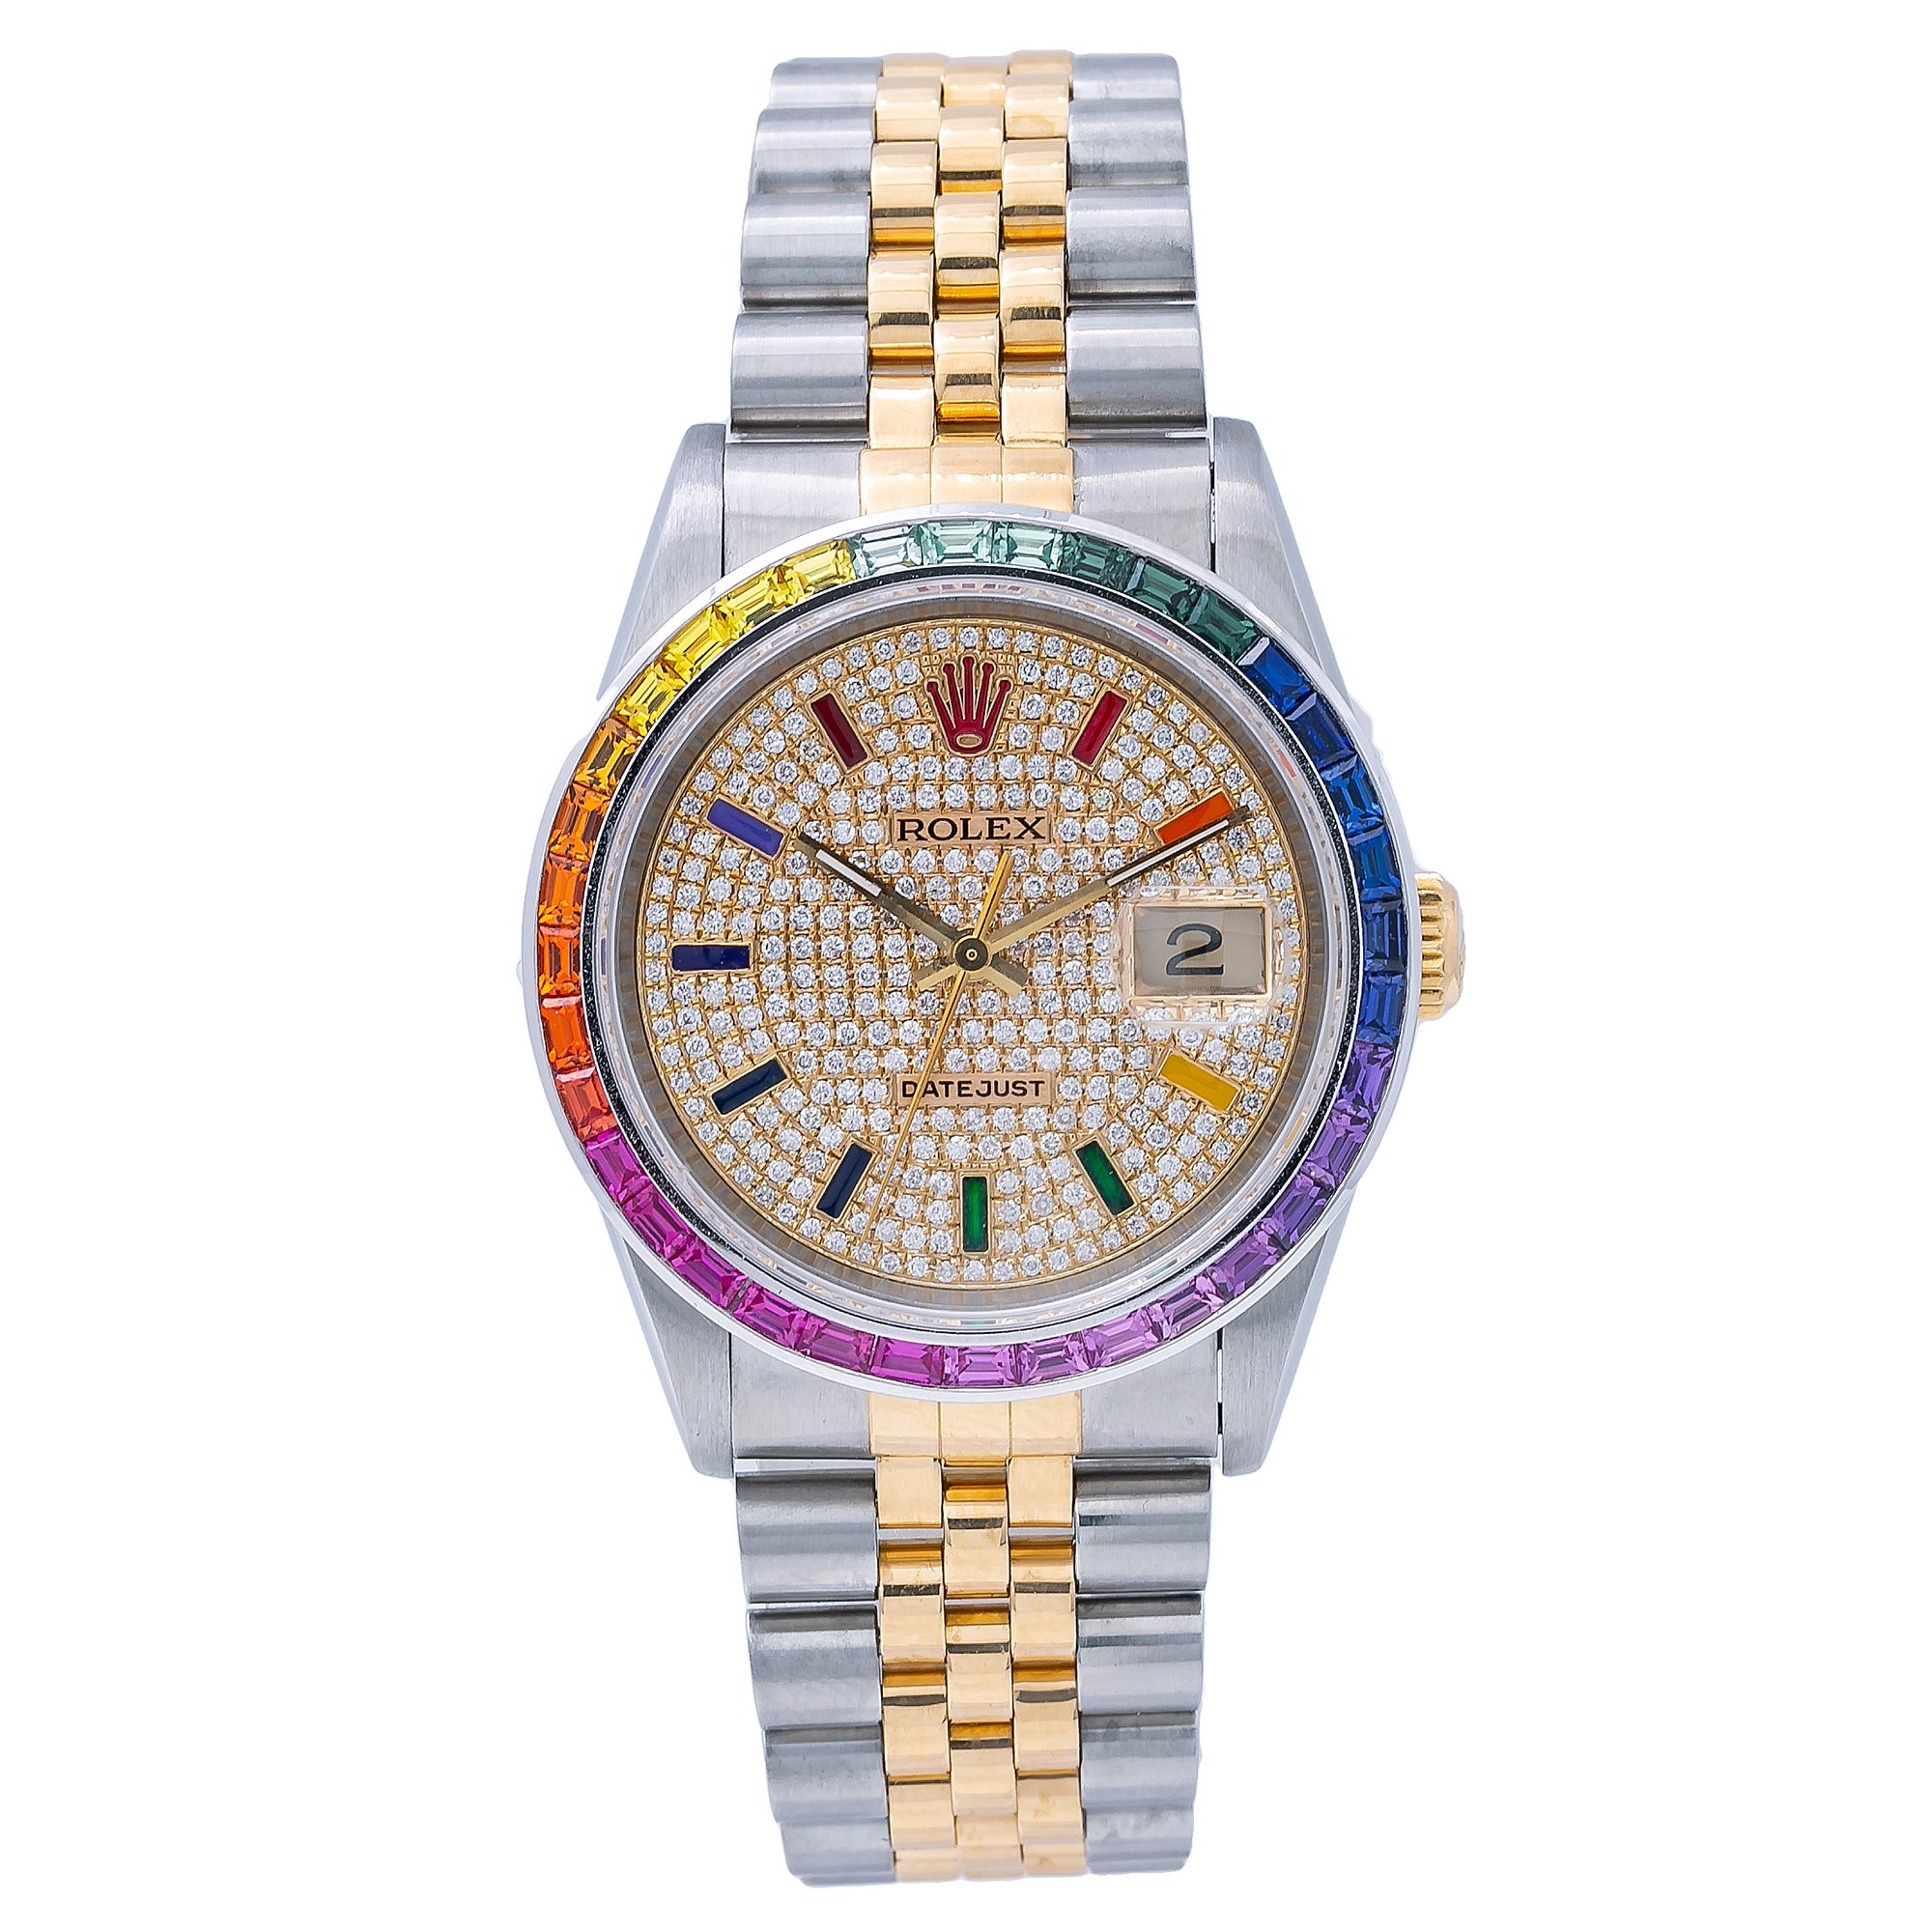 Rolex Datejust 16233 36MM Rainbow Diamond Dial With Two Tone Jubilee Bracelet